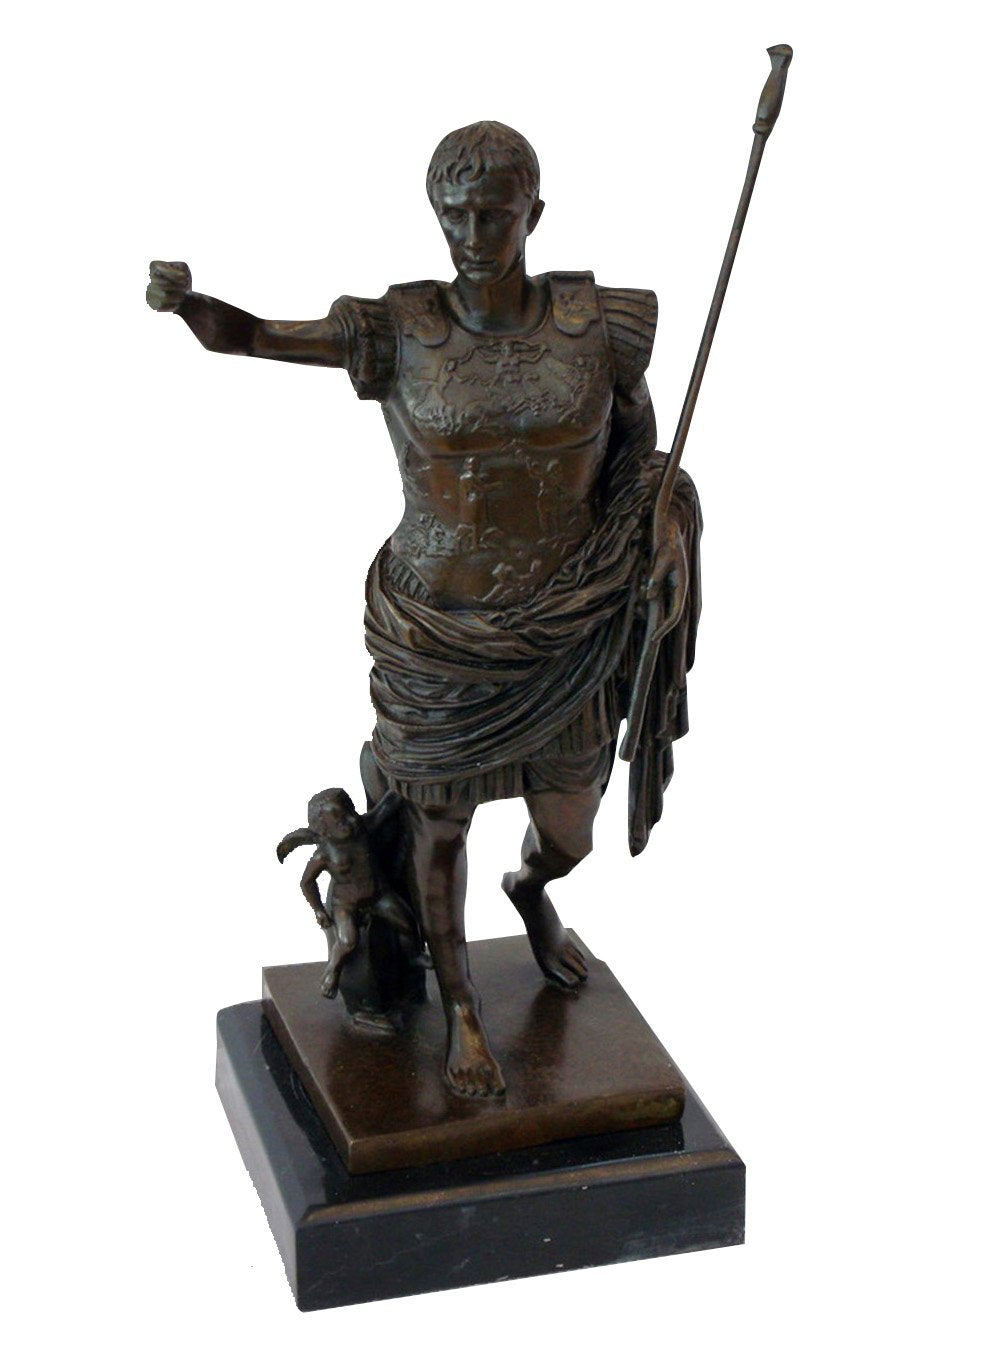 TPY-440 bronze sculpture